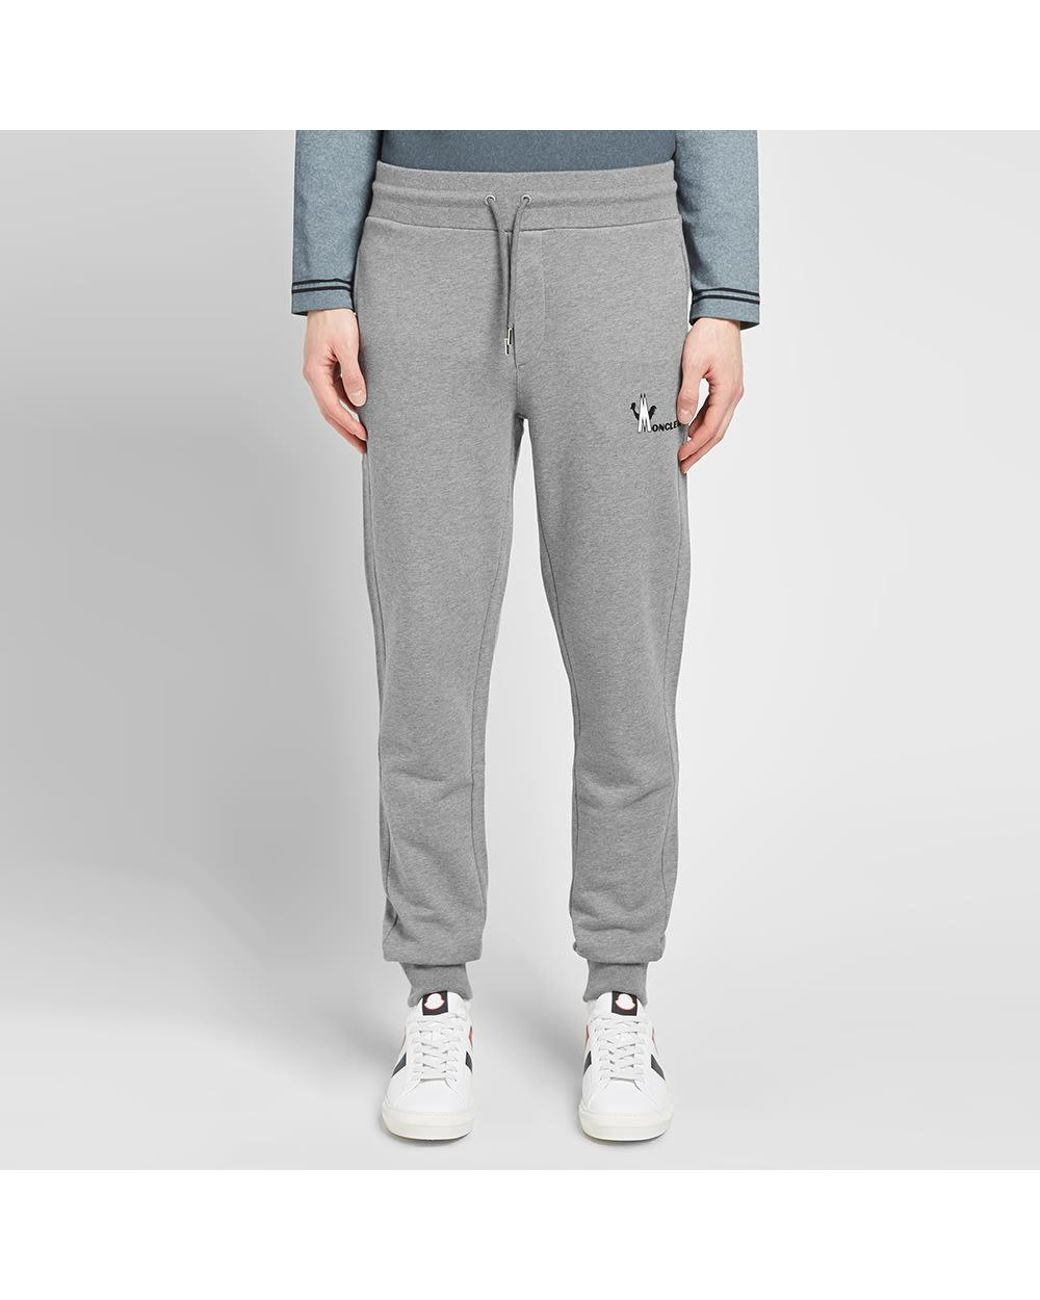 b852a3152 Moncler Logo Jersey Jogger in Gray for Men - Lyst